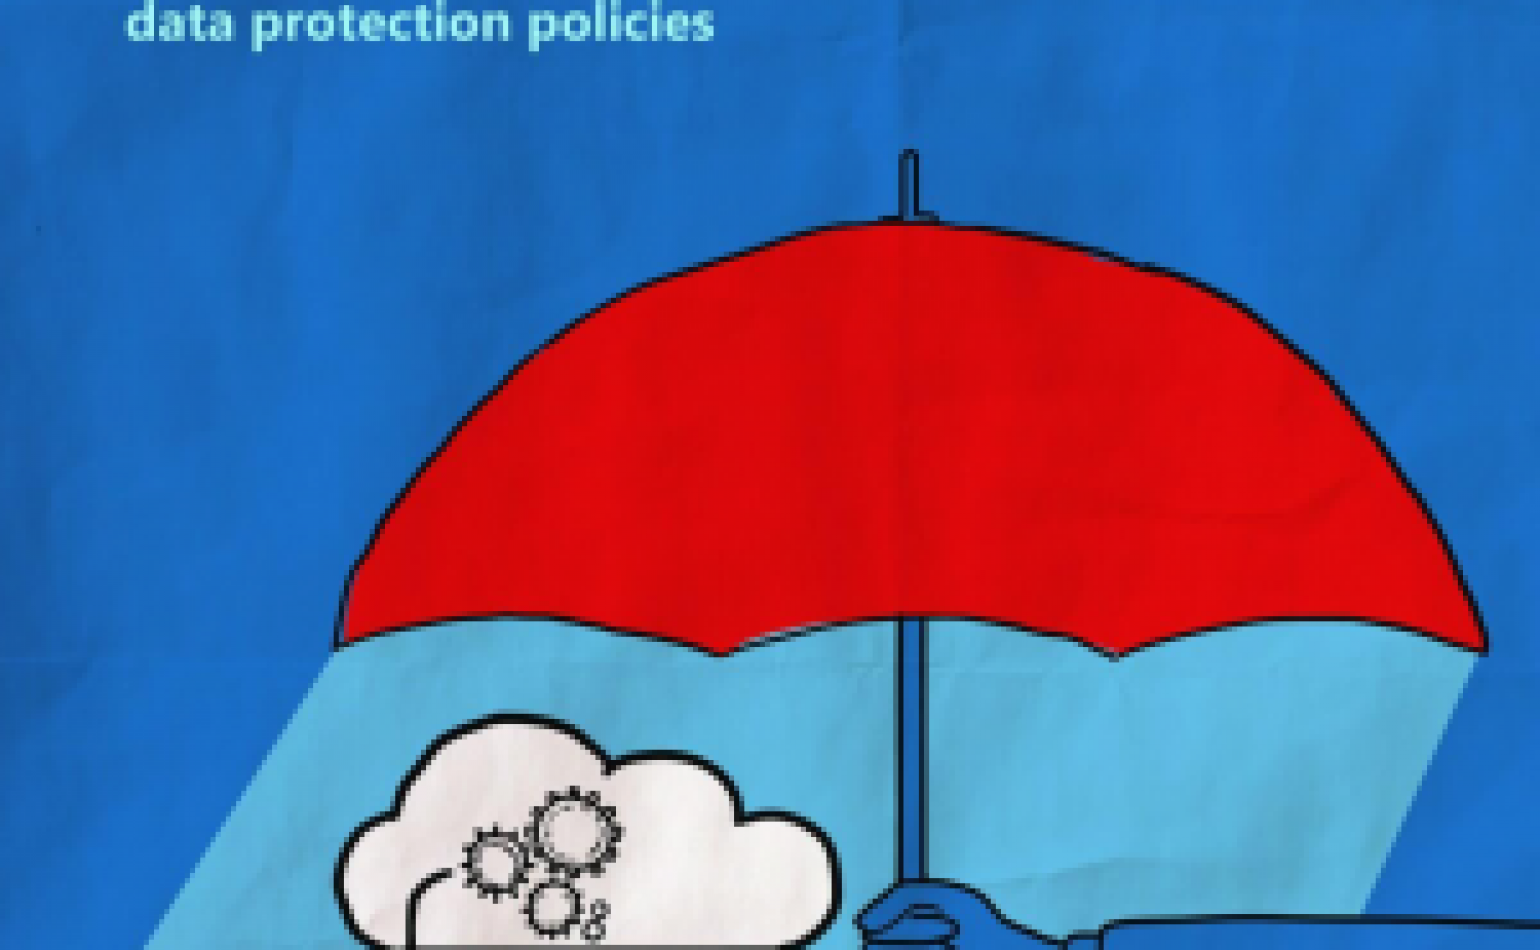 Protecting the Digital Data: An Overview of the Corporate Data Protection Policies